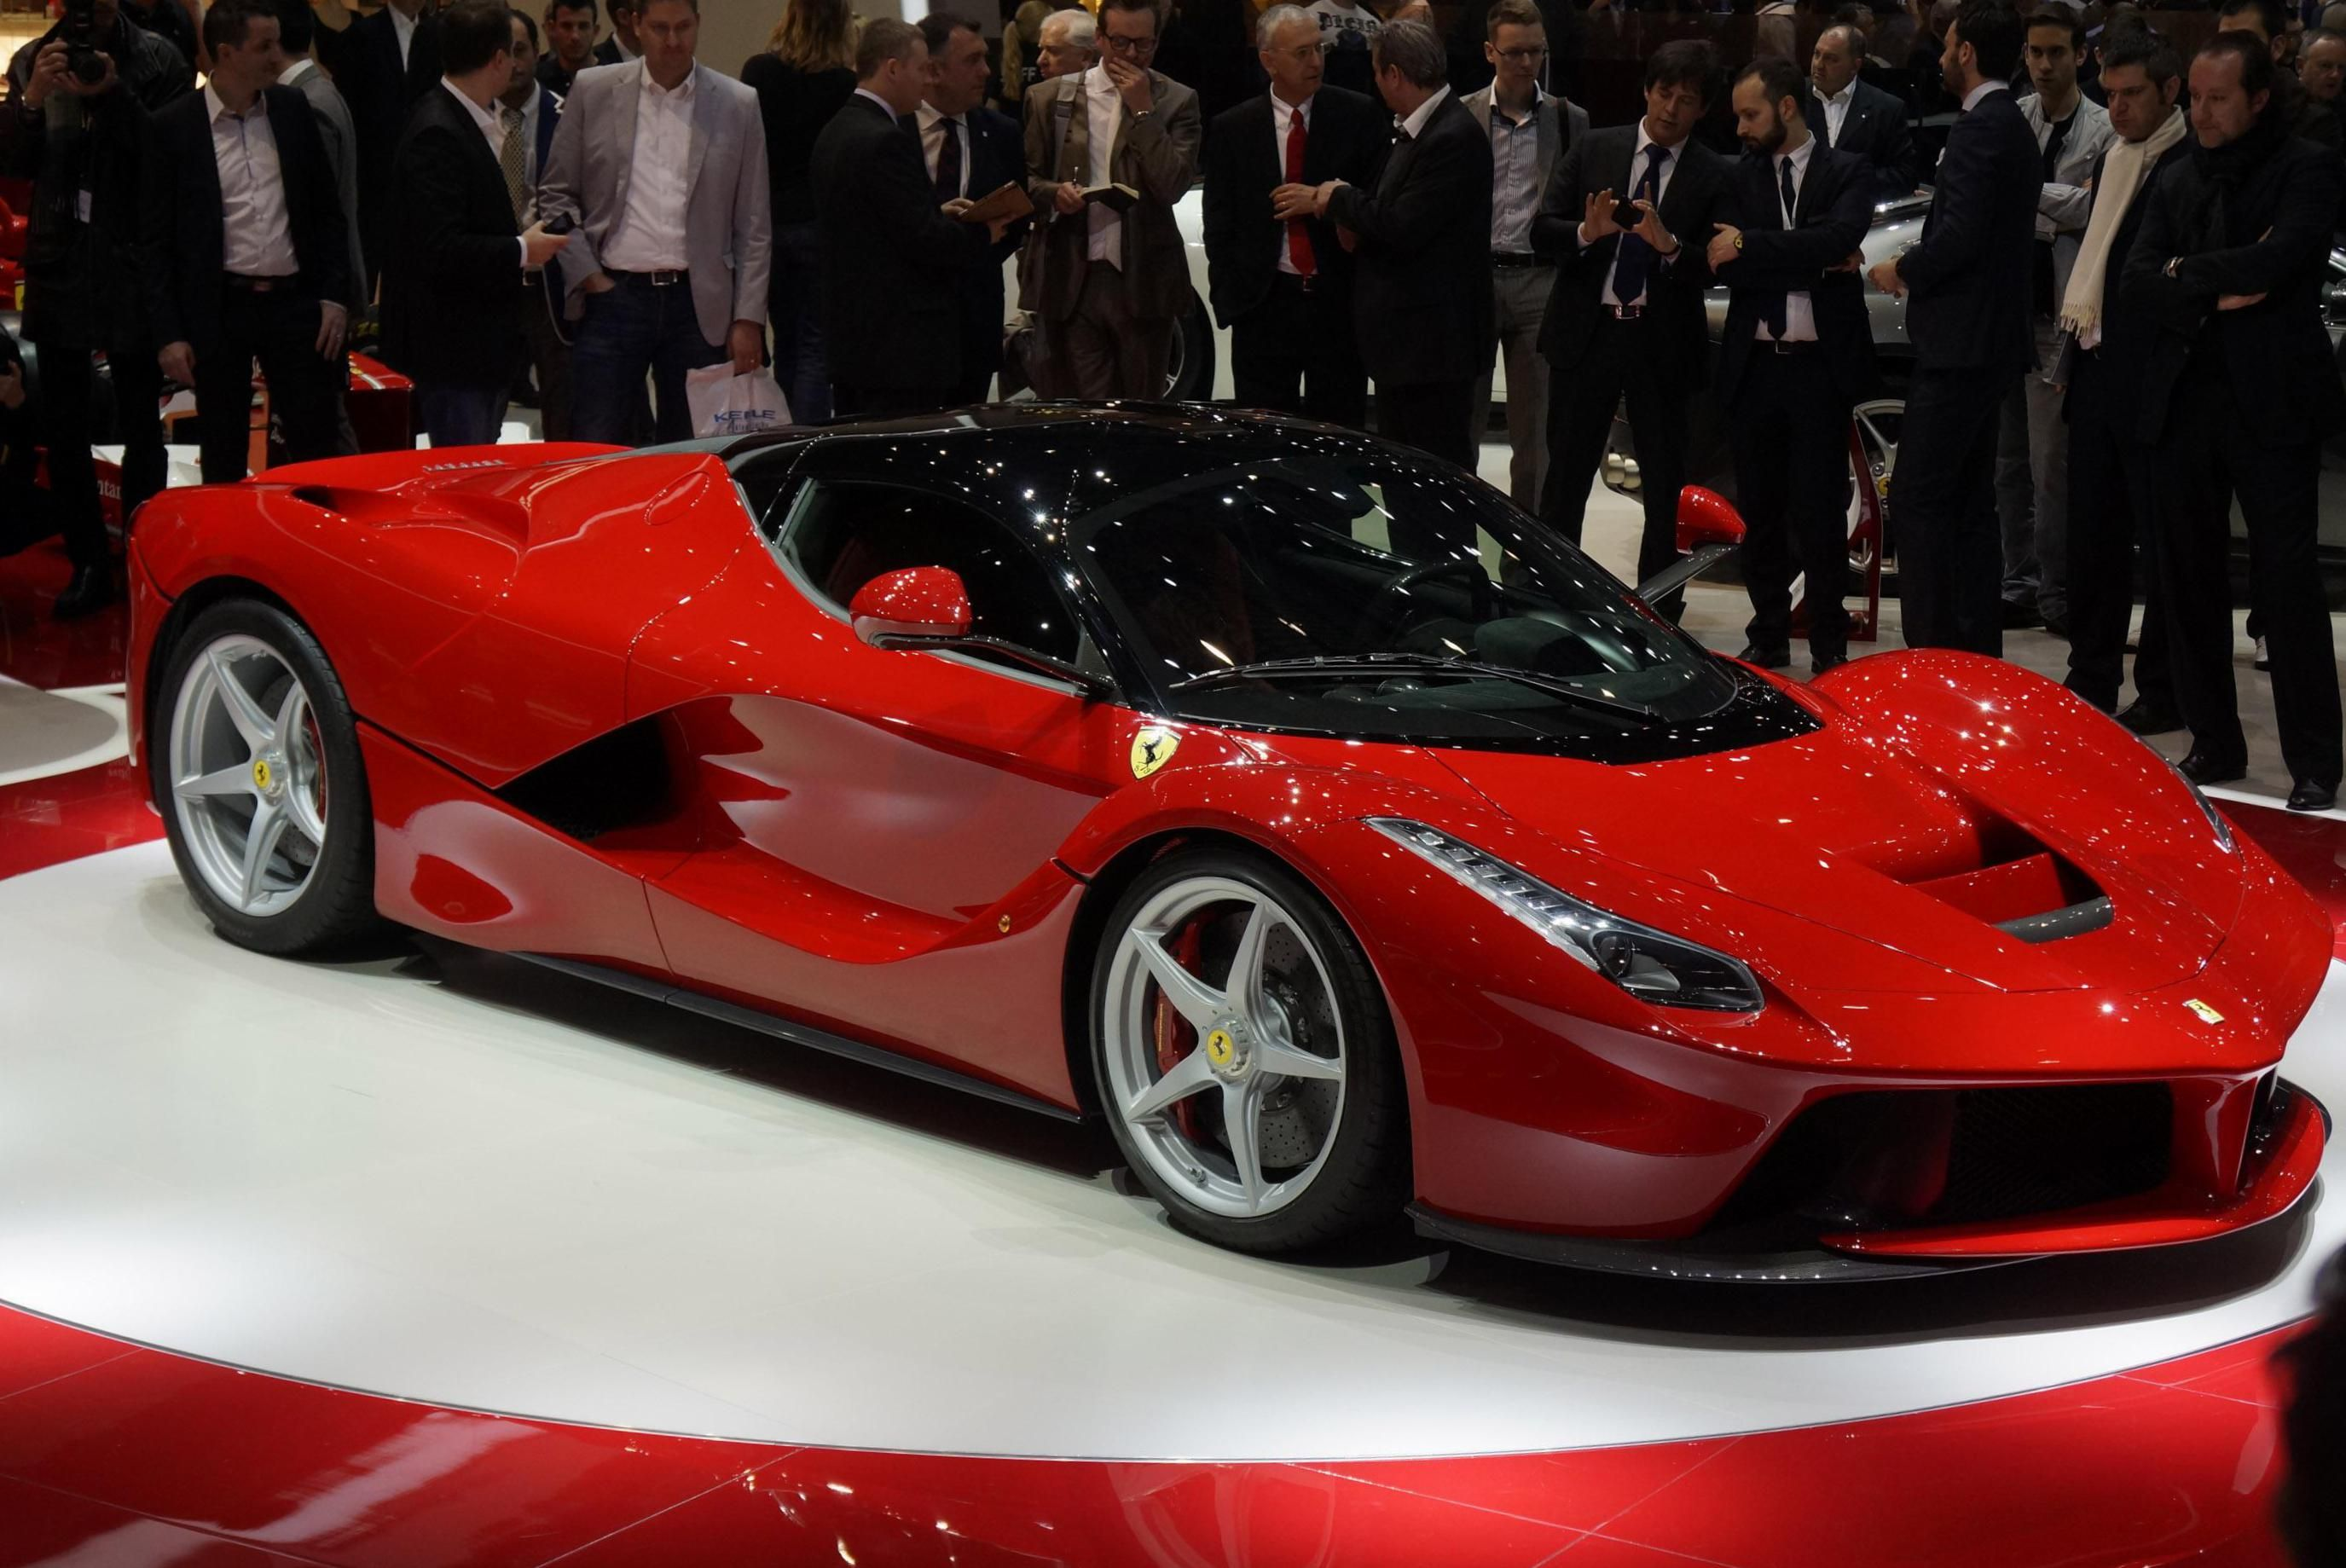 high gallery car as engined new mid film finest prices italia has look newer premiere stunning features culture at immortality ferrari best not kept maranellos for ferraris by but the to may demand race